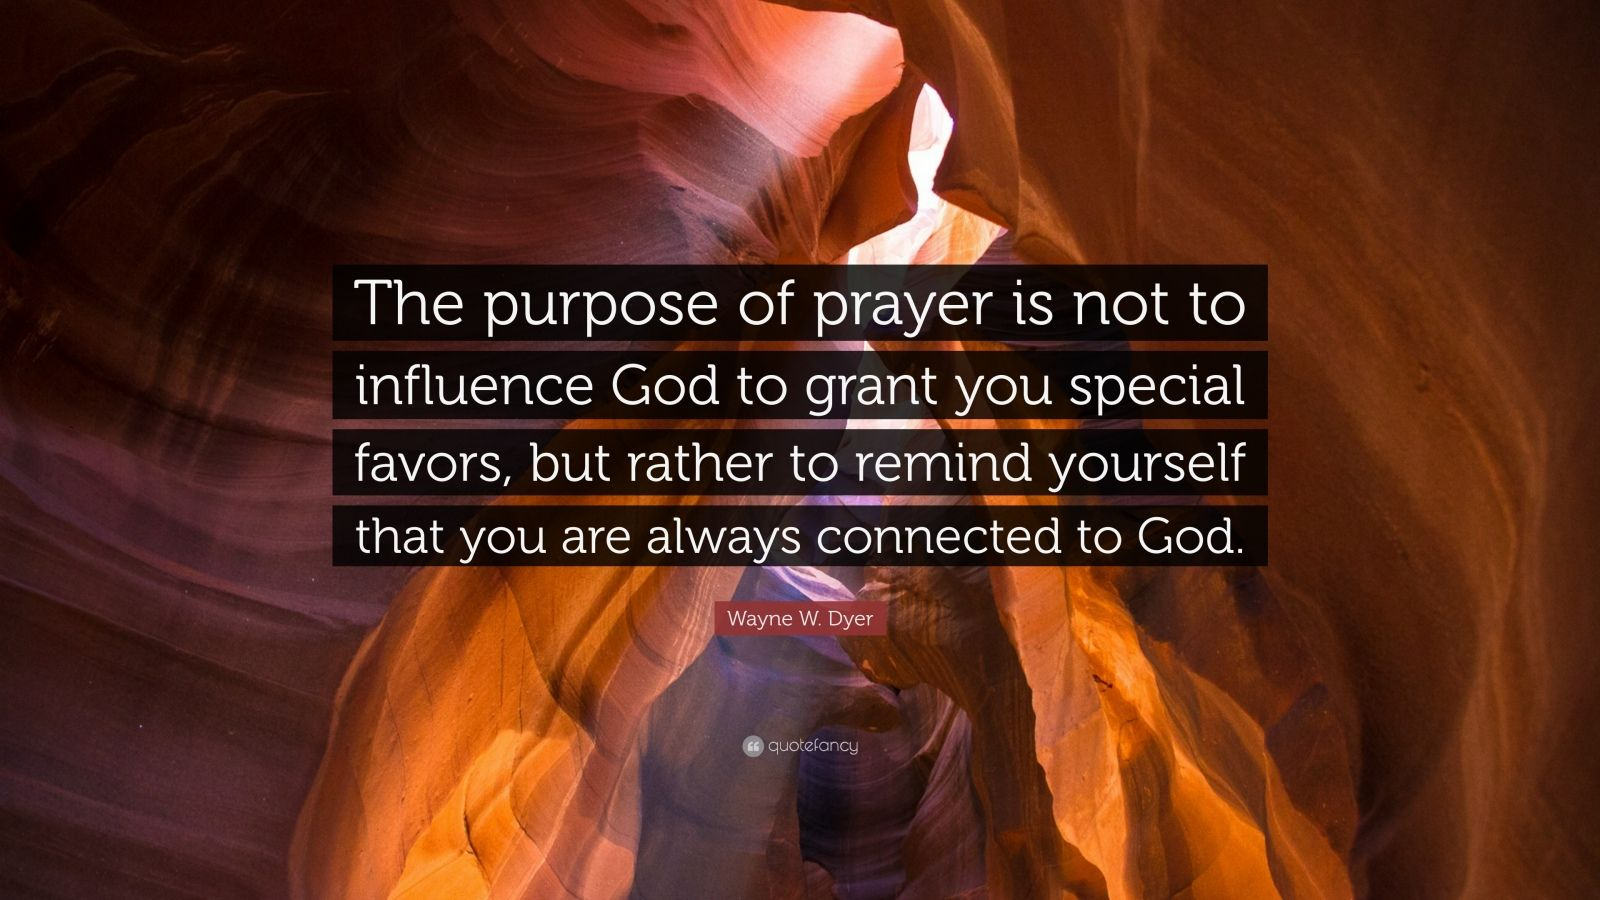 """Wayne W. Dyer Quote: """"The purpose of prayer is not to influence God to grant you special favors, but rather to remind yourself that you are always connected to God."""""""